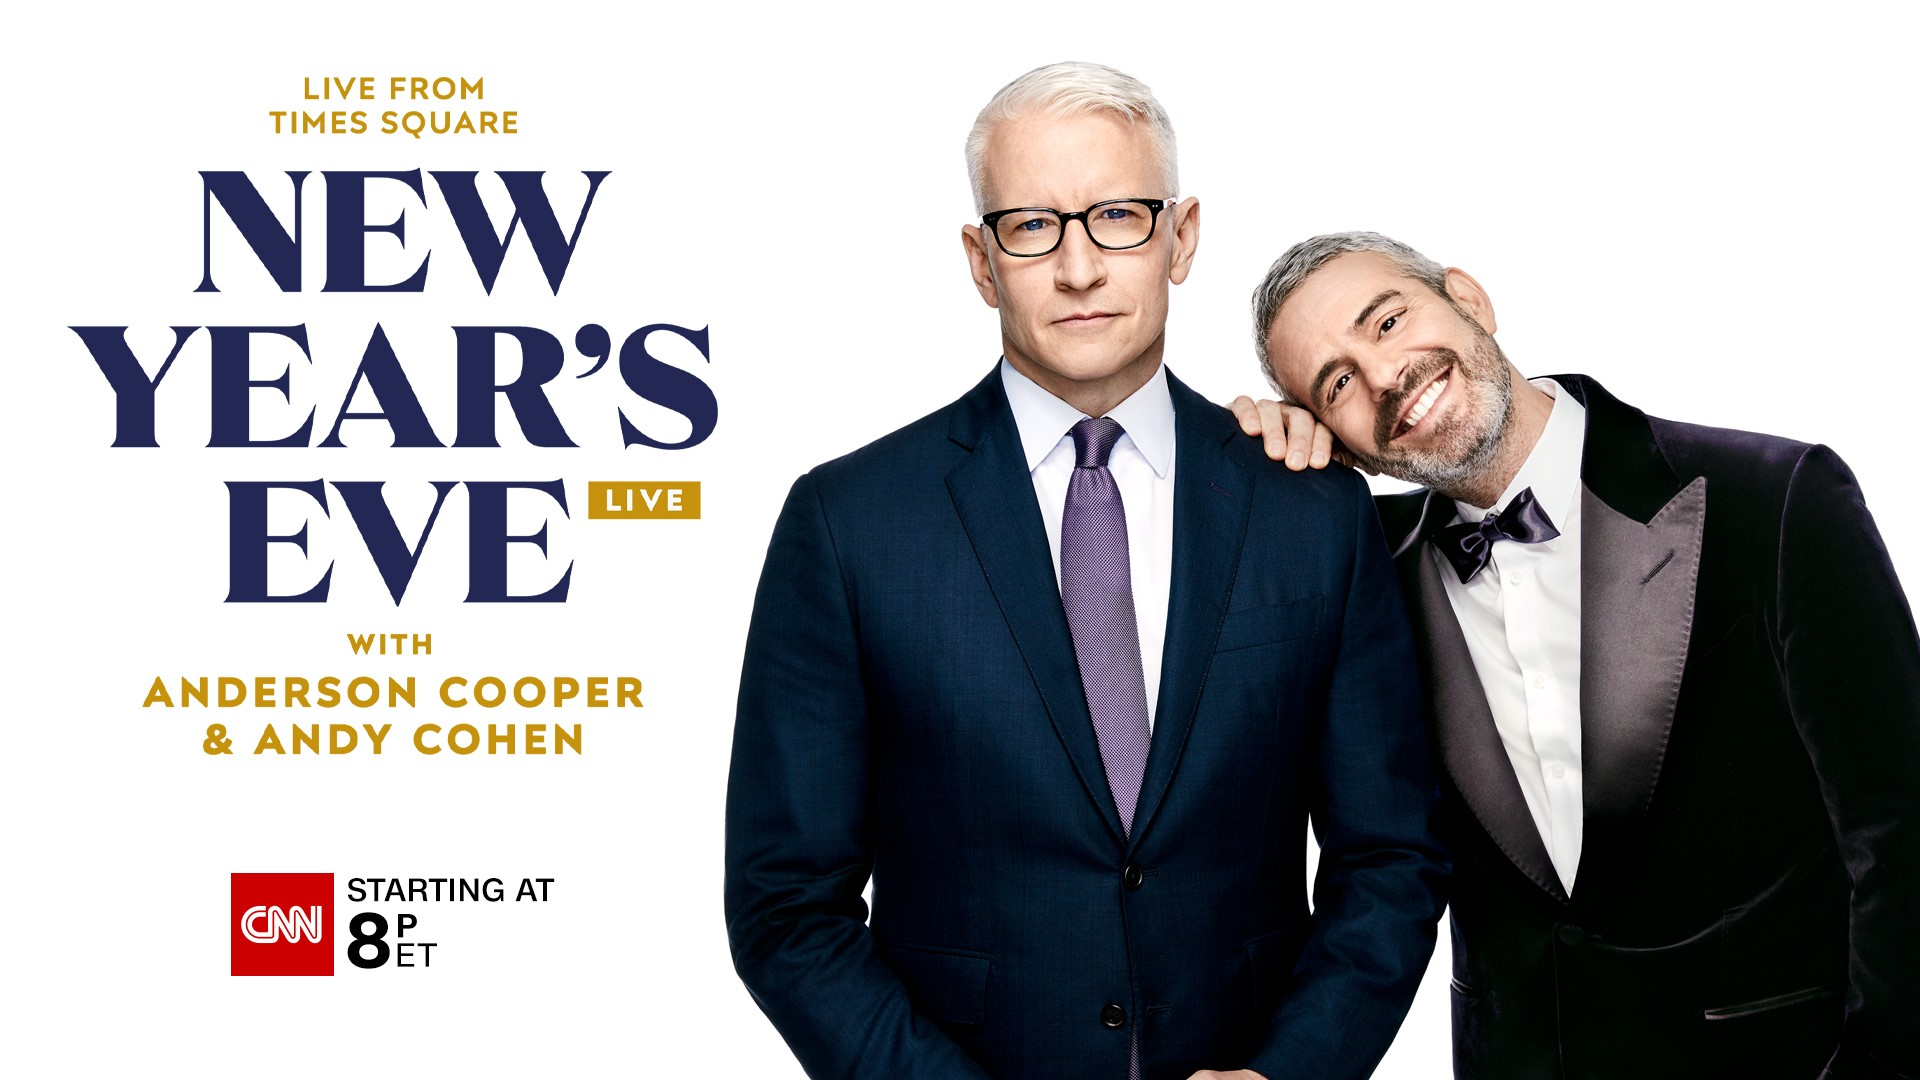 Anderson Cooper and Andy Cohen Together Again to Co-Host ...